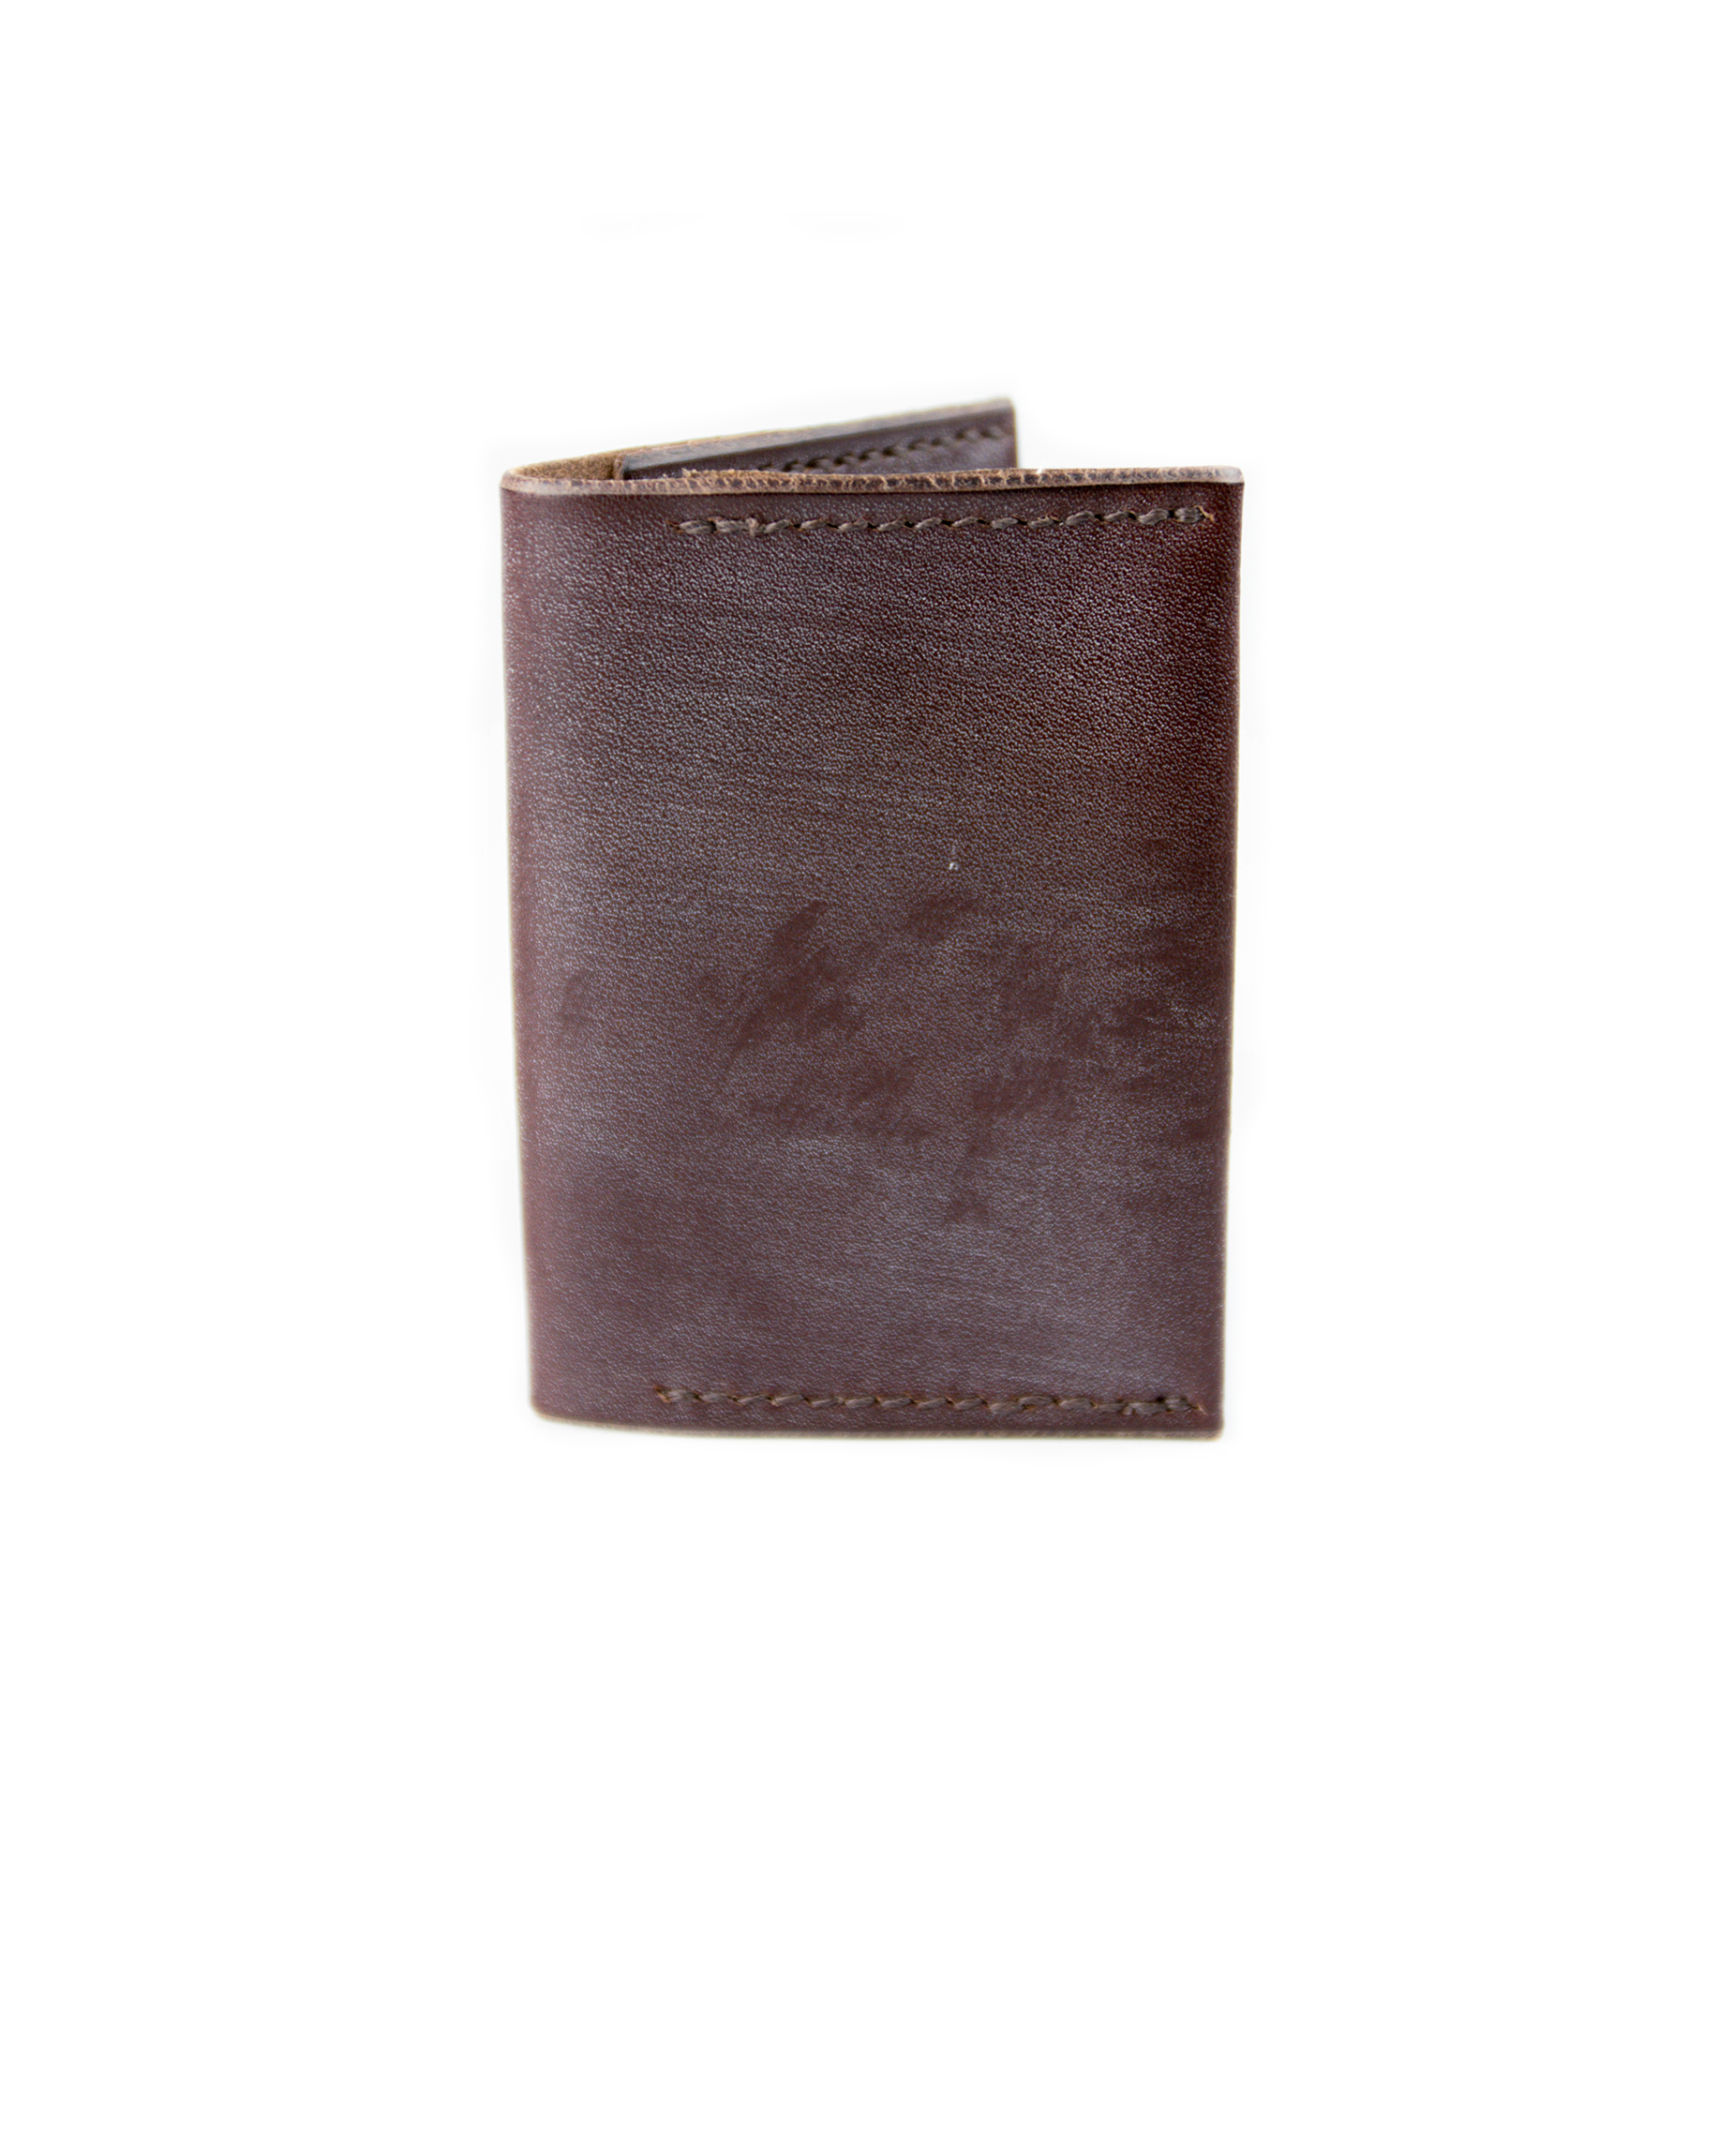 Double Card Holder - Brown - Debonair